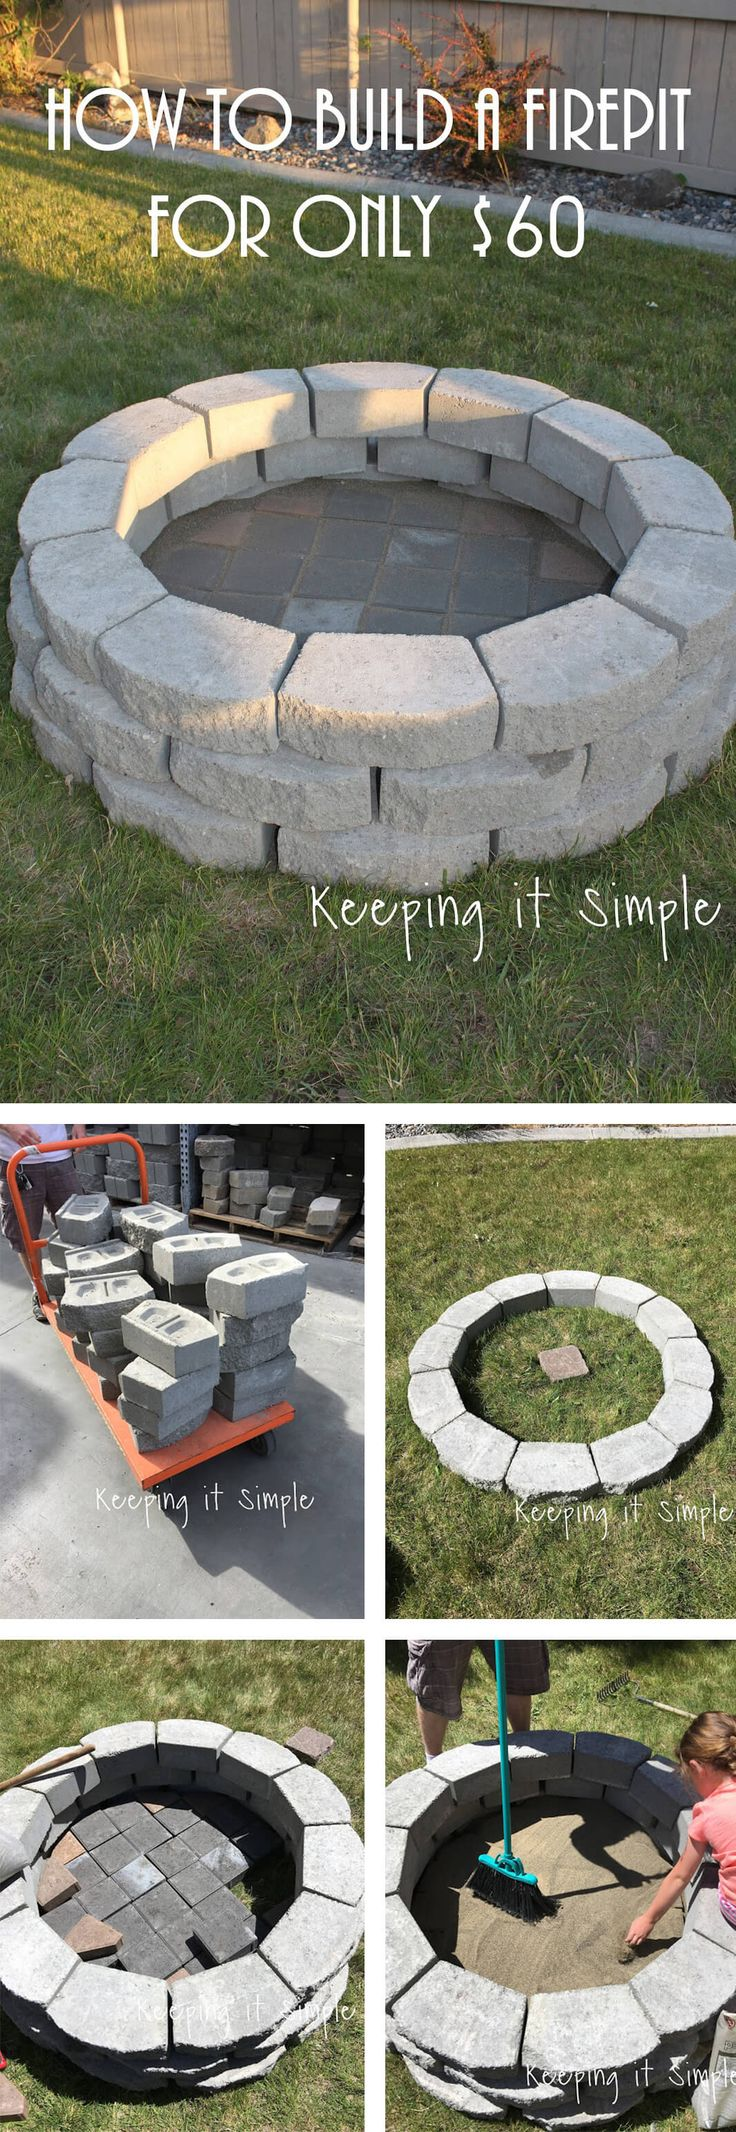 Stone fire pit designs patio traditional with artistic hardscape - 27 Awesome Diy Firepit Ideas For Your Yard